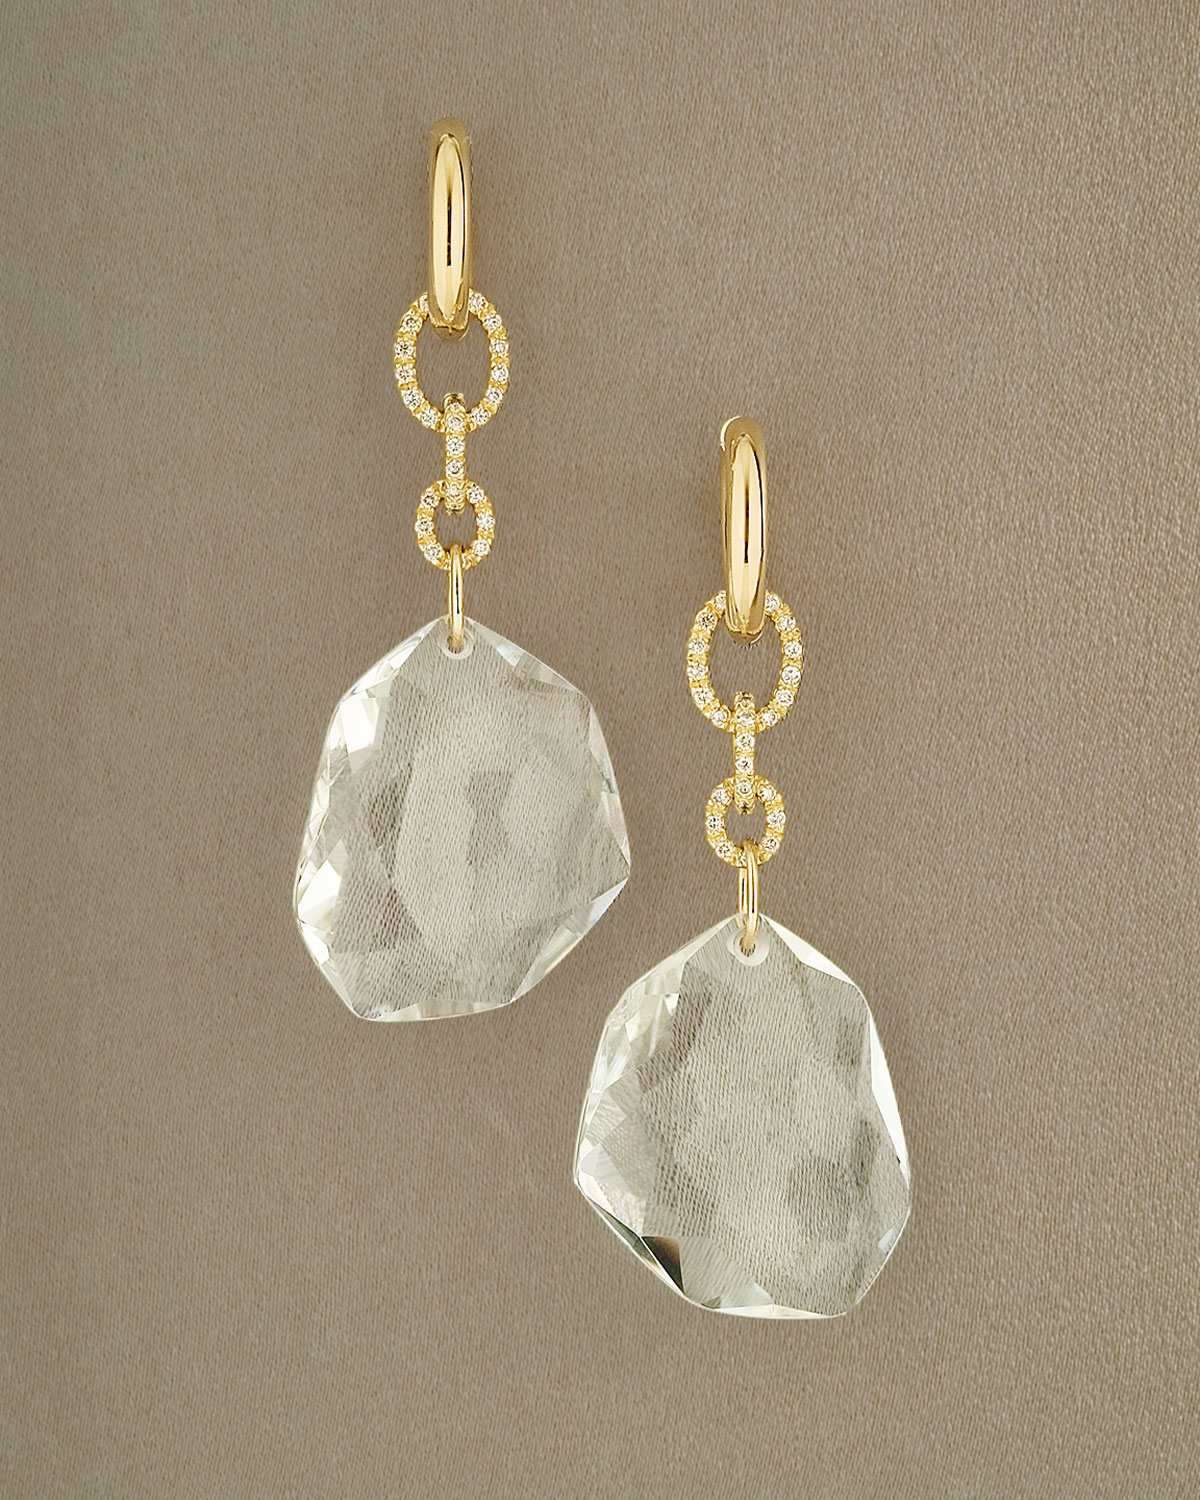 shop sbswswq earrings charles white quartz krypell